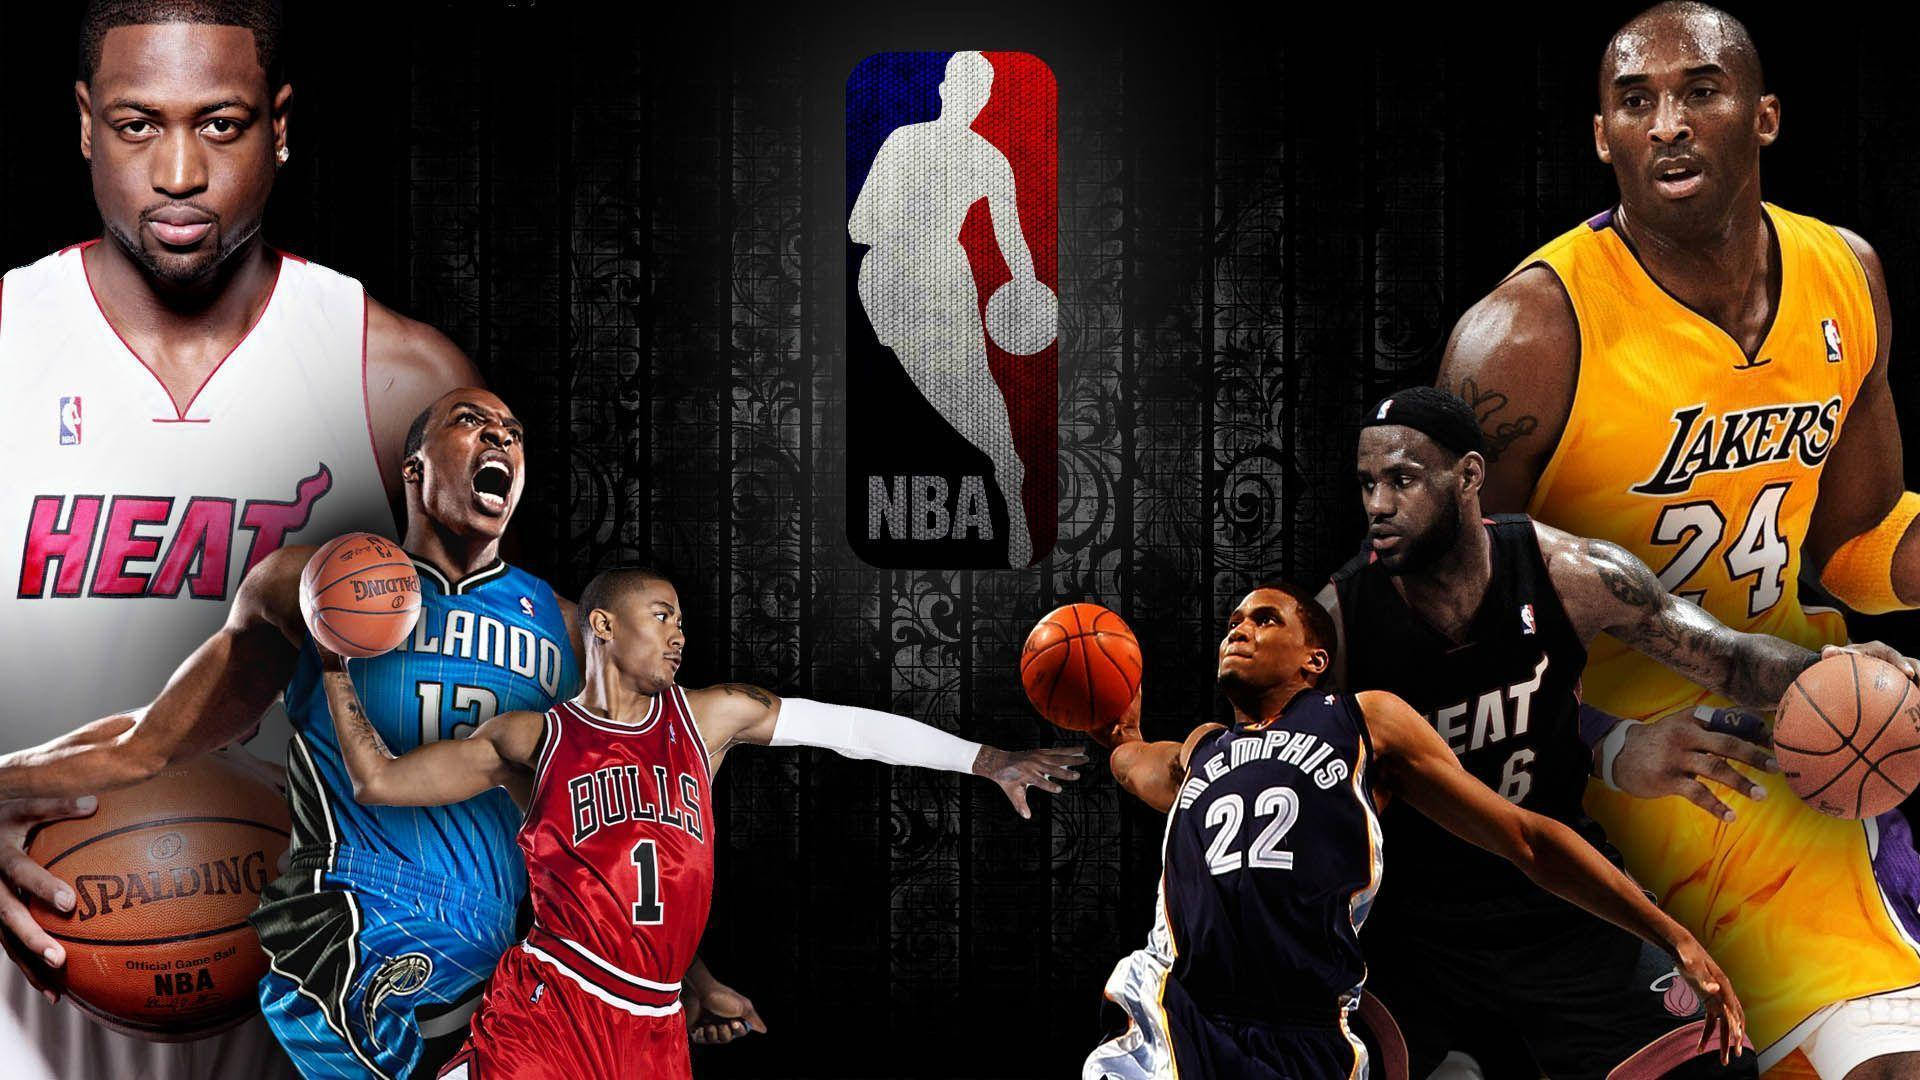 NBA Players - 1920x1080 - Full HD 16/9 - Wallpaper #5784 on ...